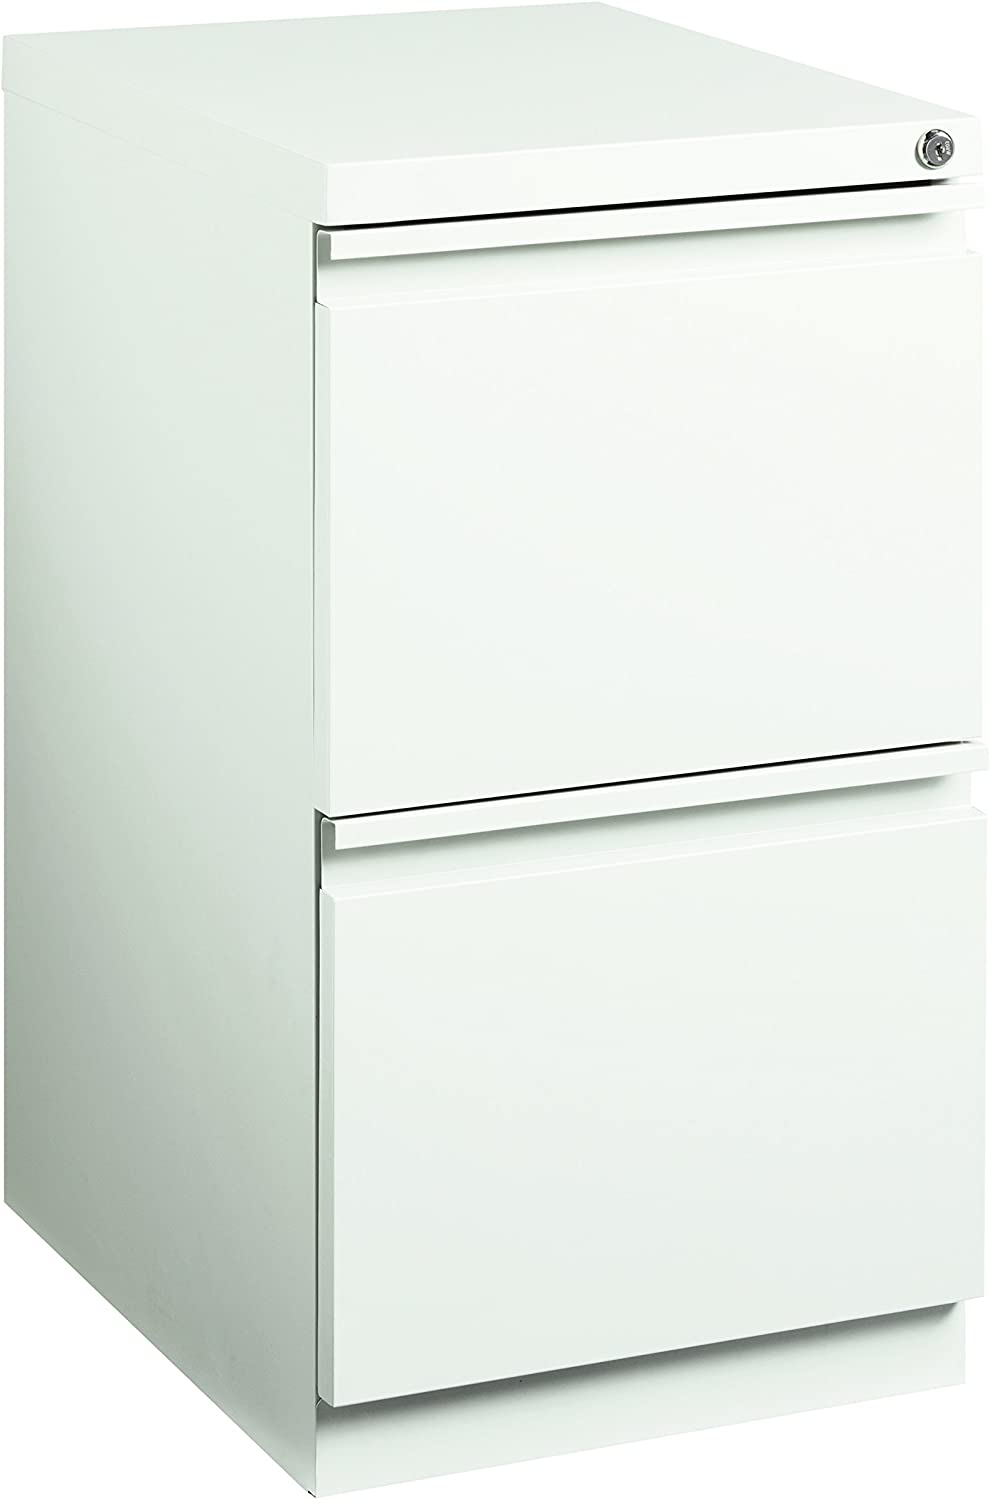 Pro Series Two Drawer Mobile Pedestal File Cabinet, White, 20 inches deep